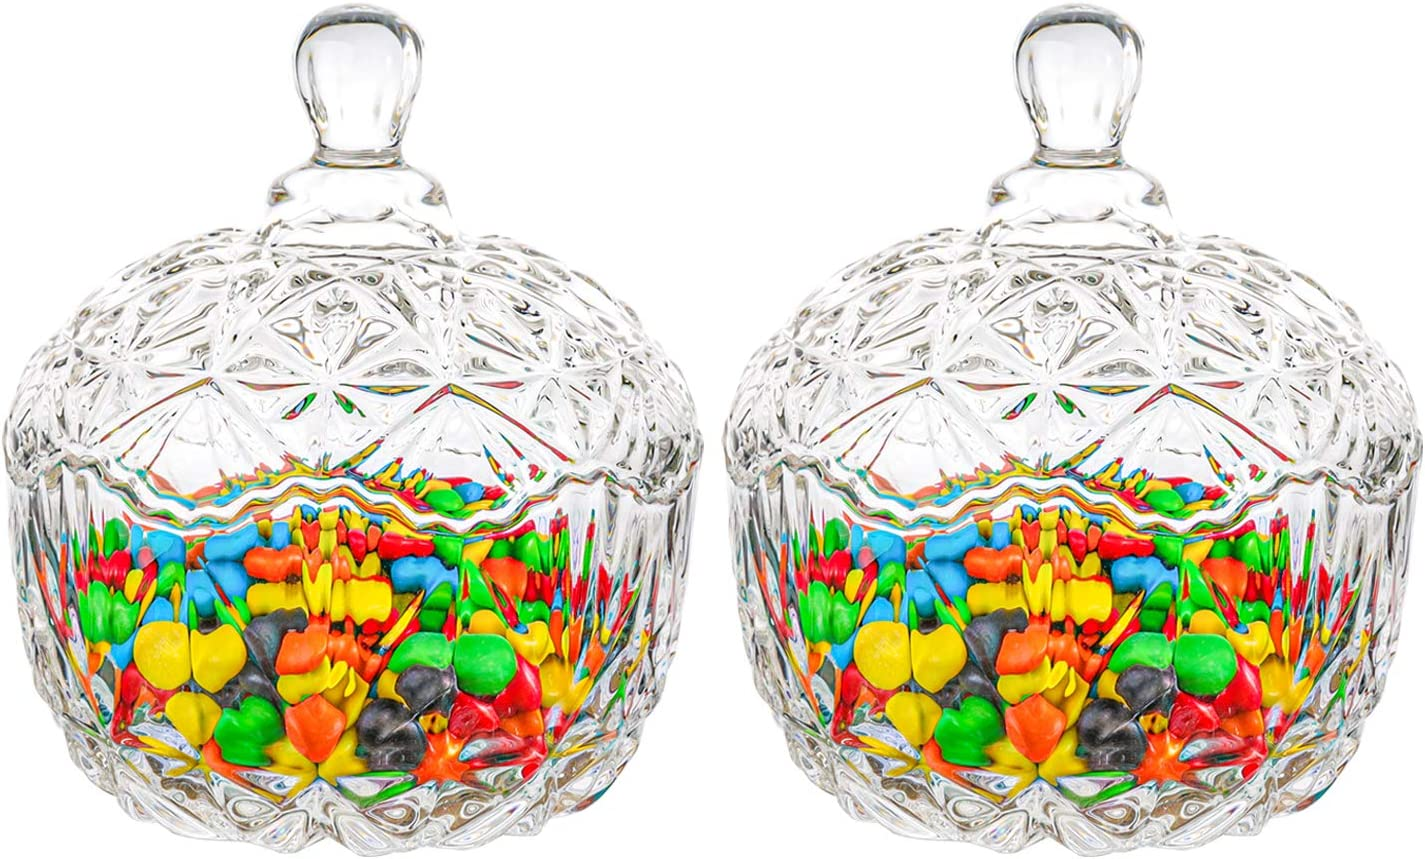 ComSaf Glass Candy Dish with Lid Decorative Candy Bowl, Crystal Covered Candy Jar for Home Office Desk, Set of 2(Diameter:4.1 Inch)